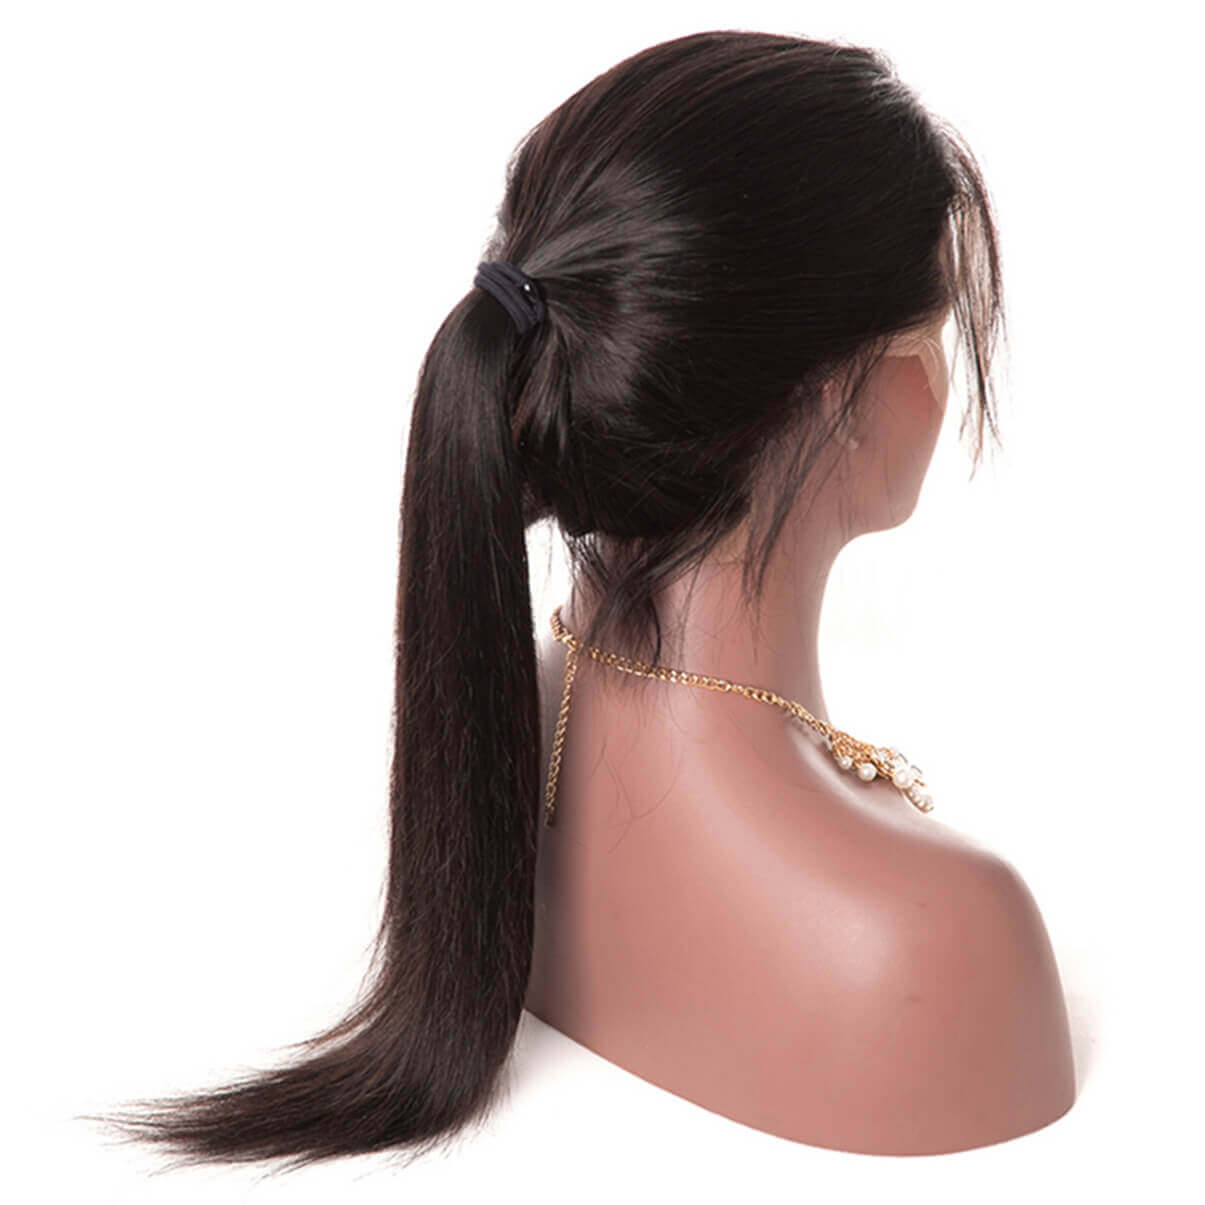 Lakihair 100% Unprocessed Human Hair Silky Straight Lace Front Wigs With Baby Hair